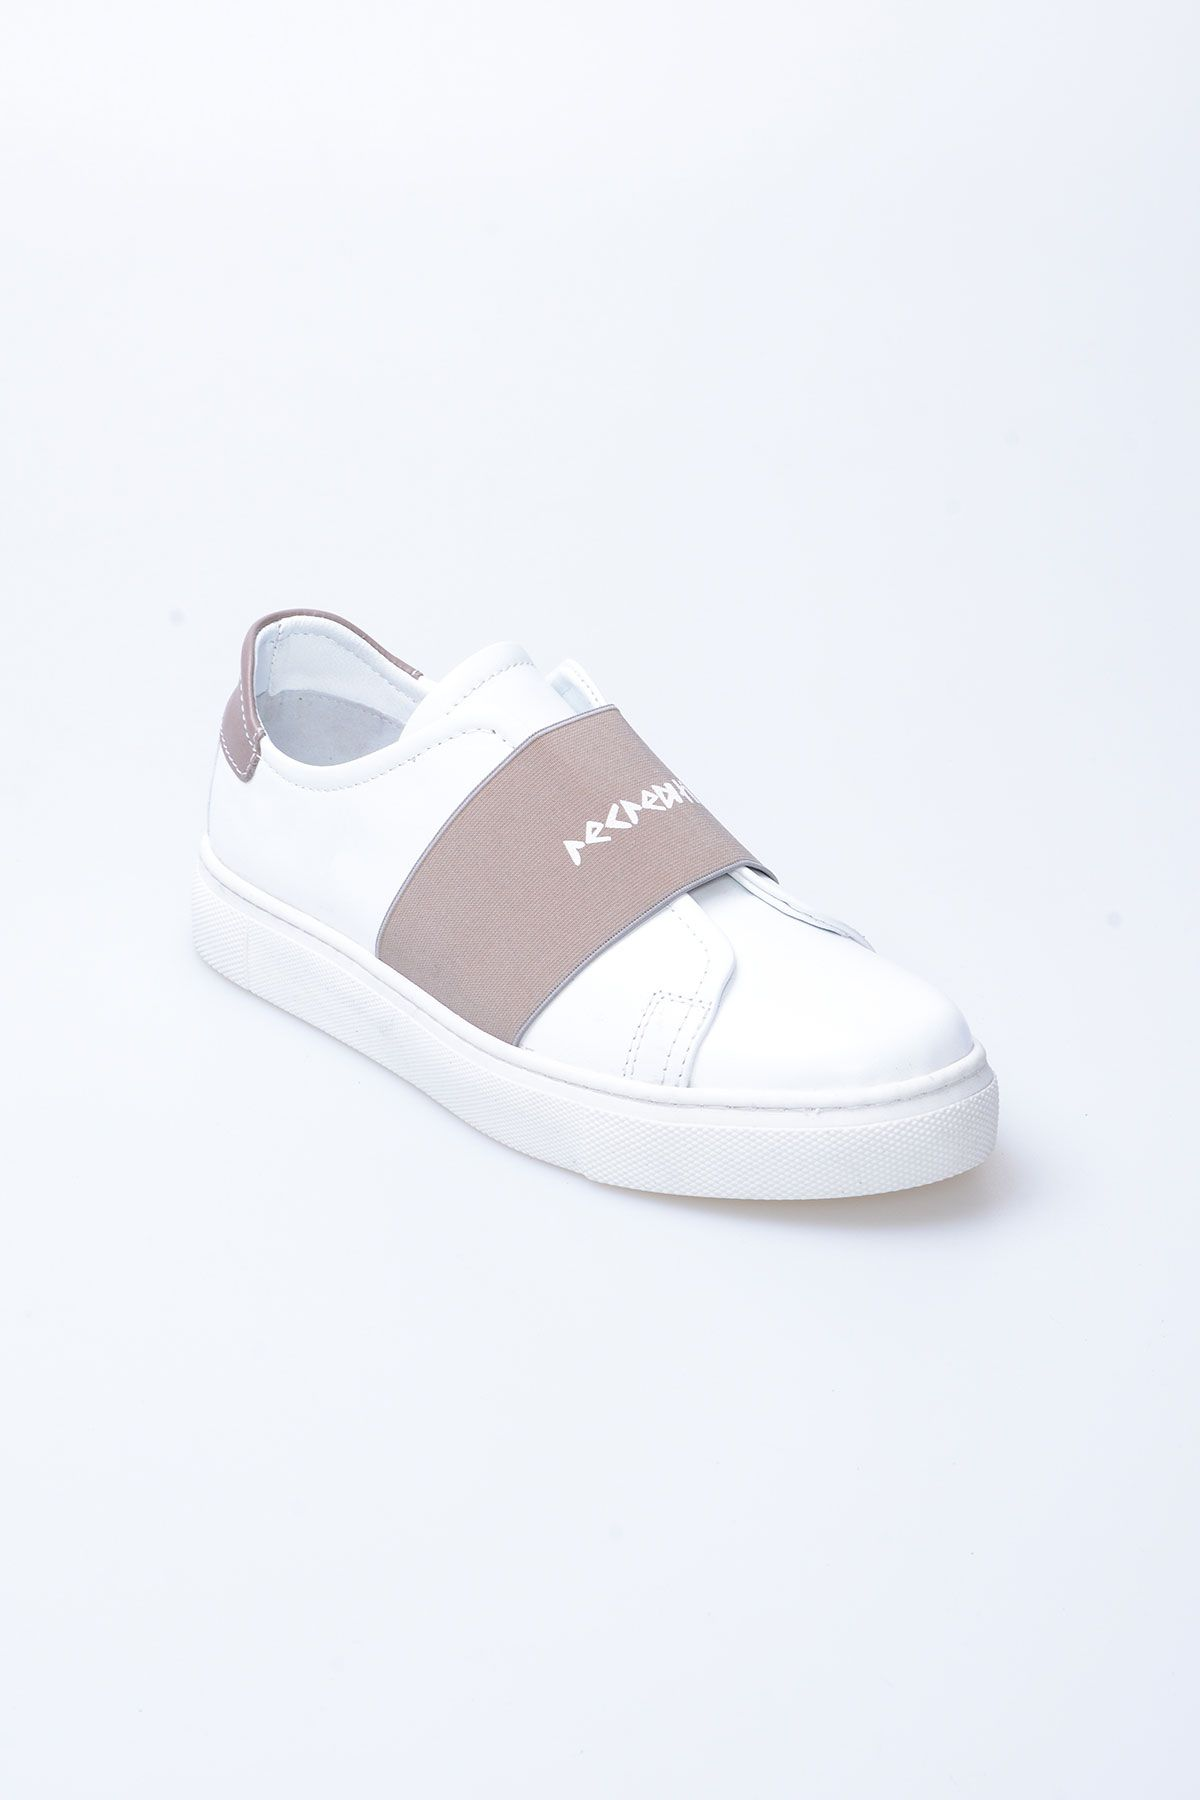 Pegia Recreation Hakiki Deri Bayan Sneaker 19REC101 Vizon